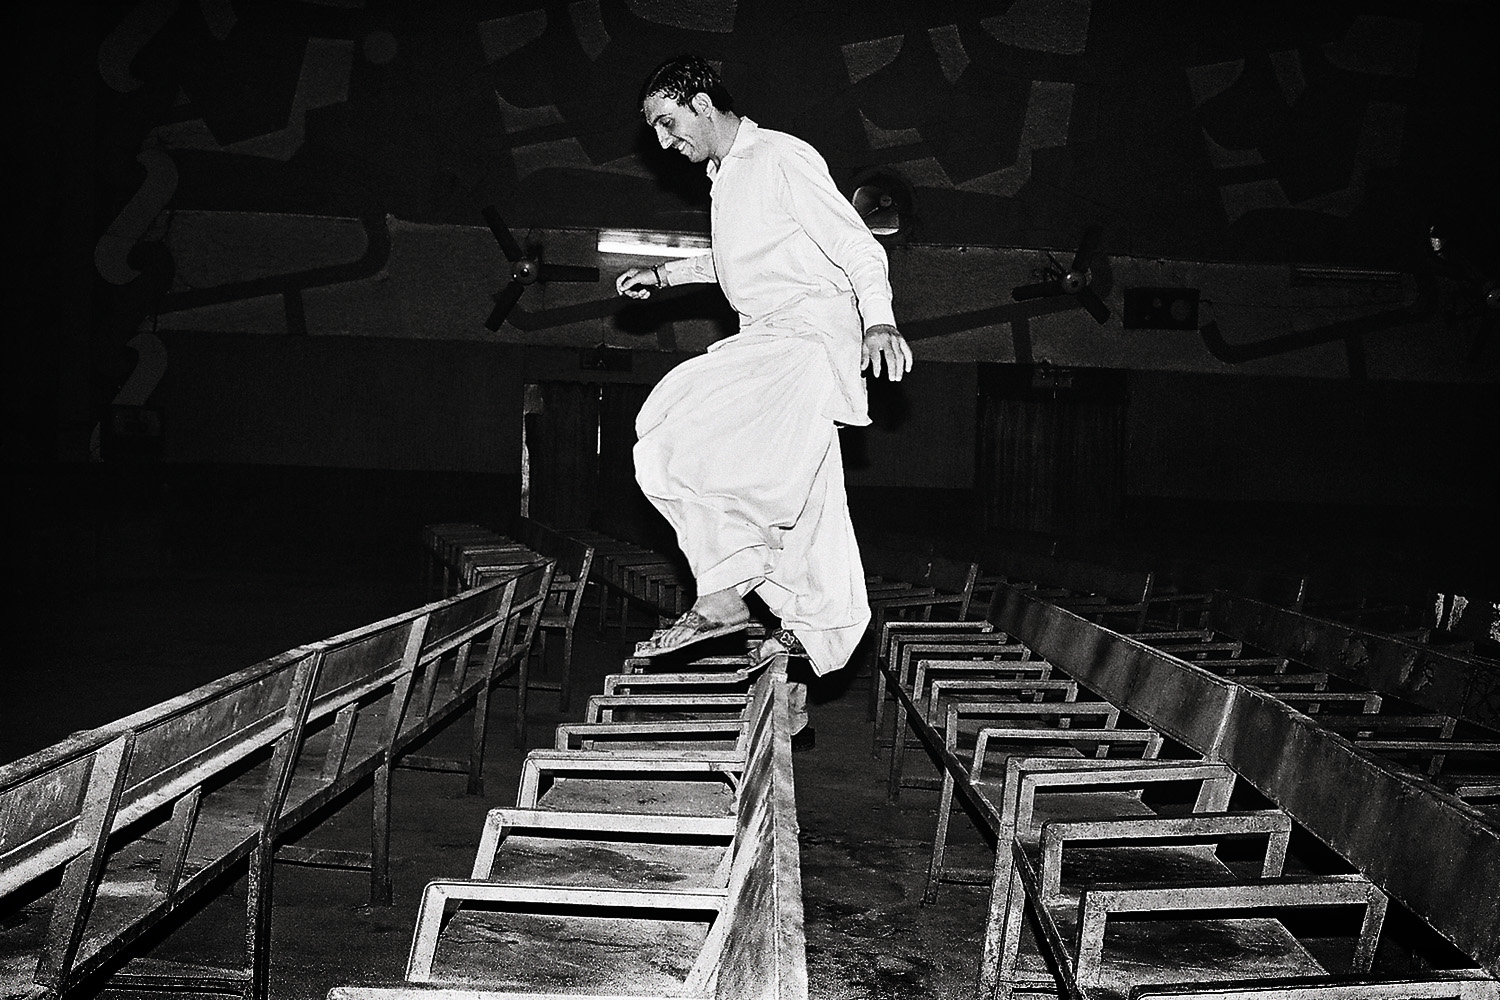 As the film ends and the crowds have cleared out, a young man exits by hopping over the seats.